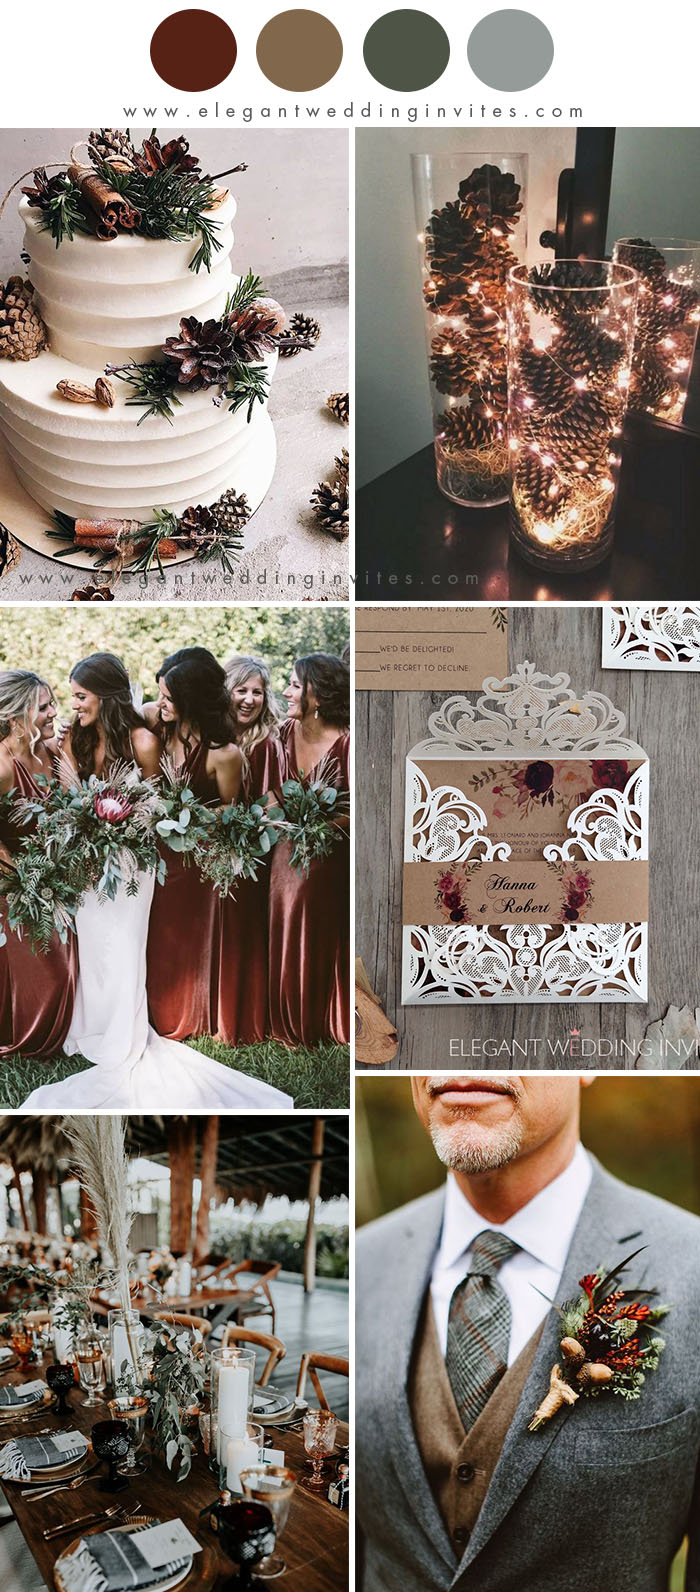 10 Best Winter Wedding Color Palettes For 2020 2021 Elegantweddinginvites Com Blog